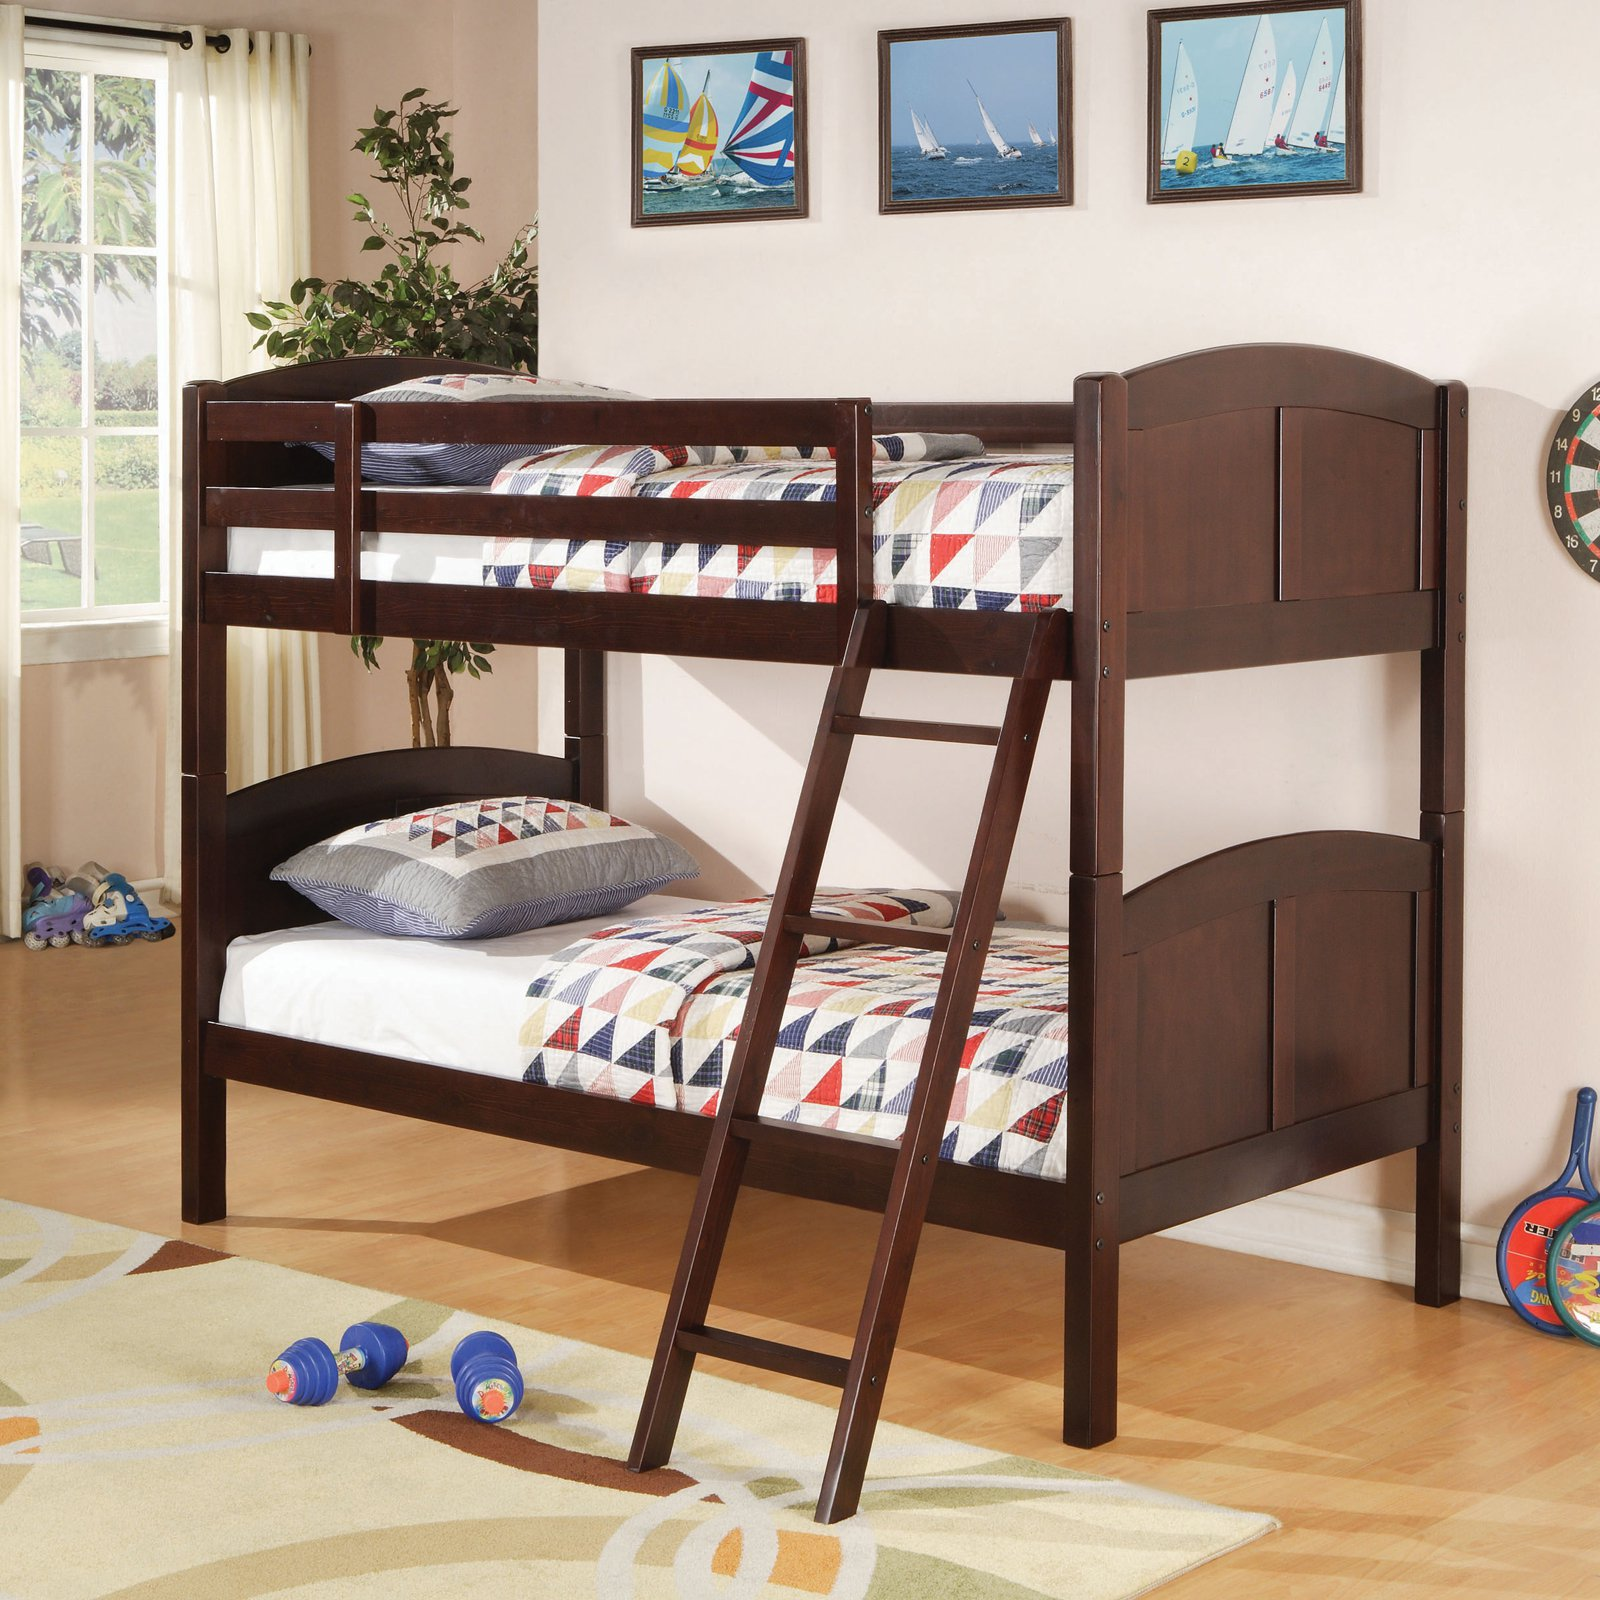 Coaster Furniture Twin over Twin Bunk Bed - Cappuccino